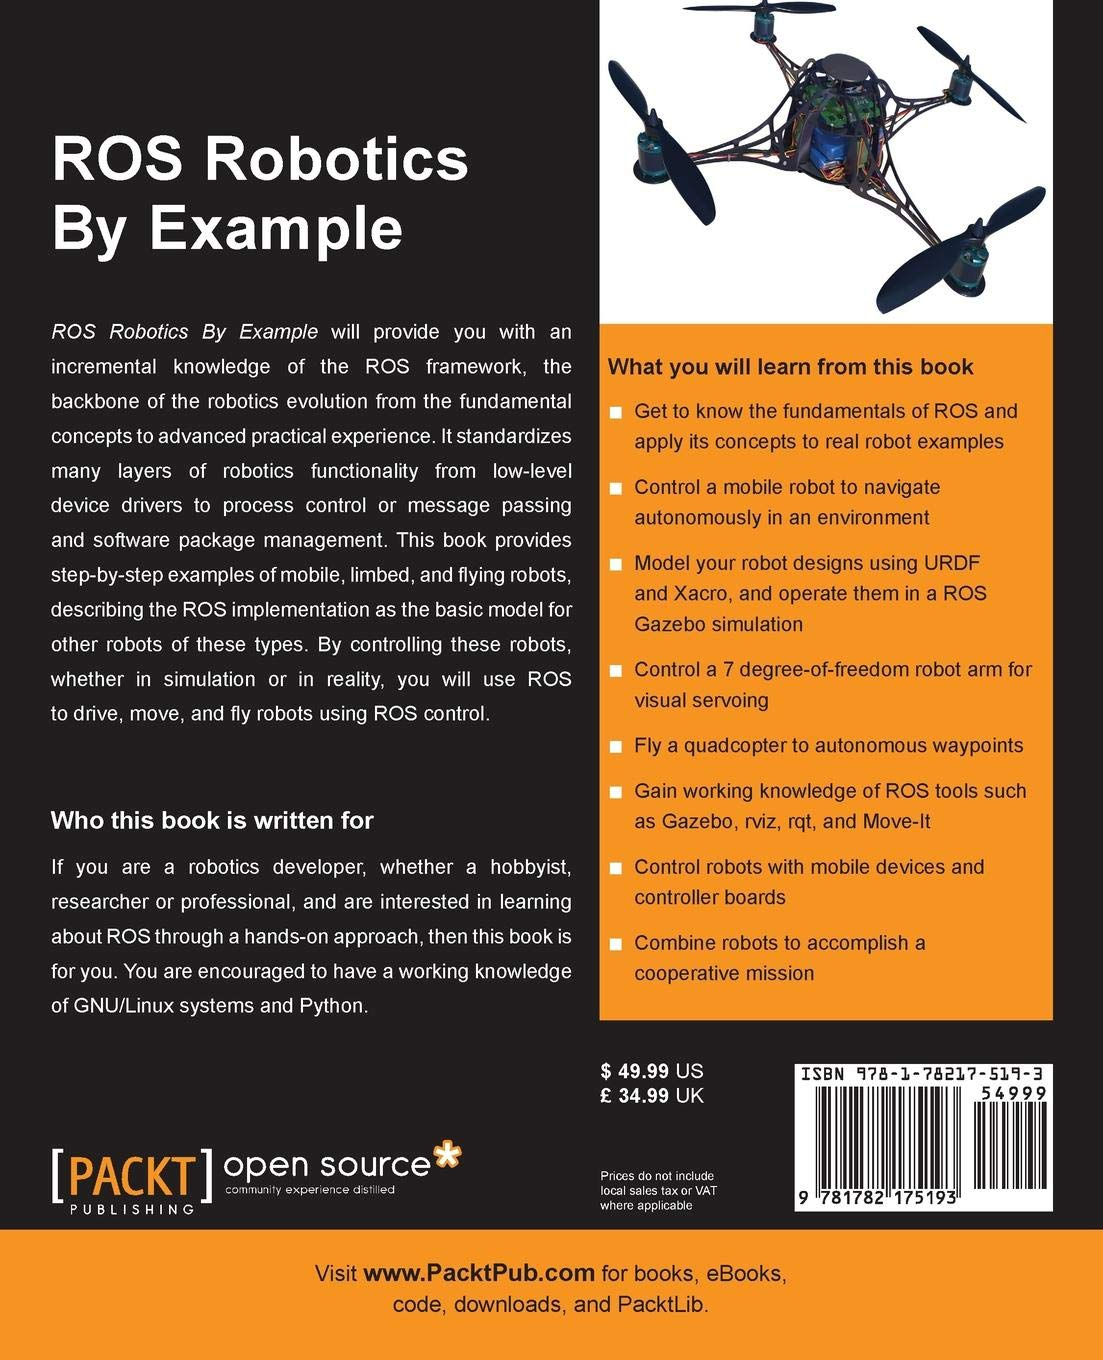 ROS MOVEIT ROBOTIC ARM - Trying to view states and control